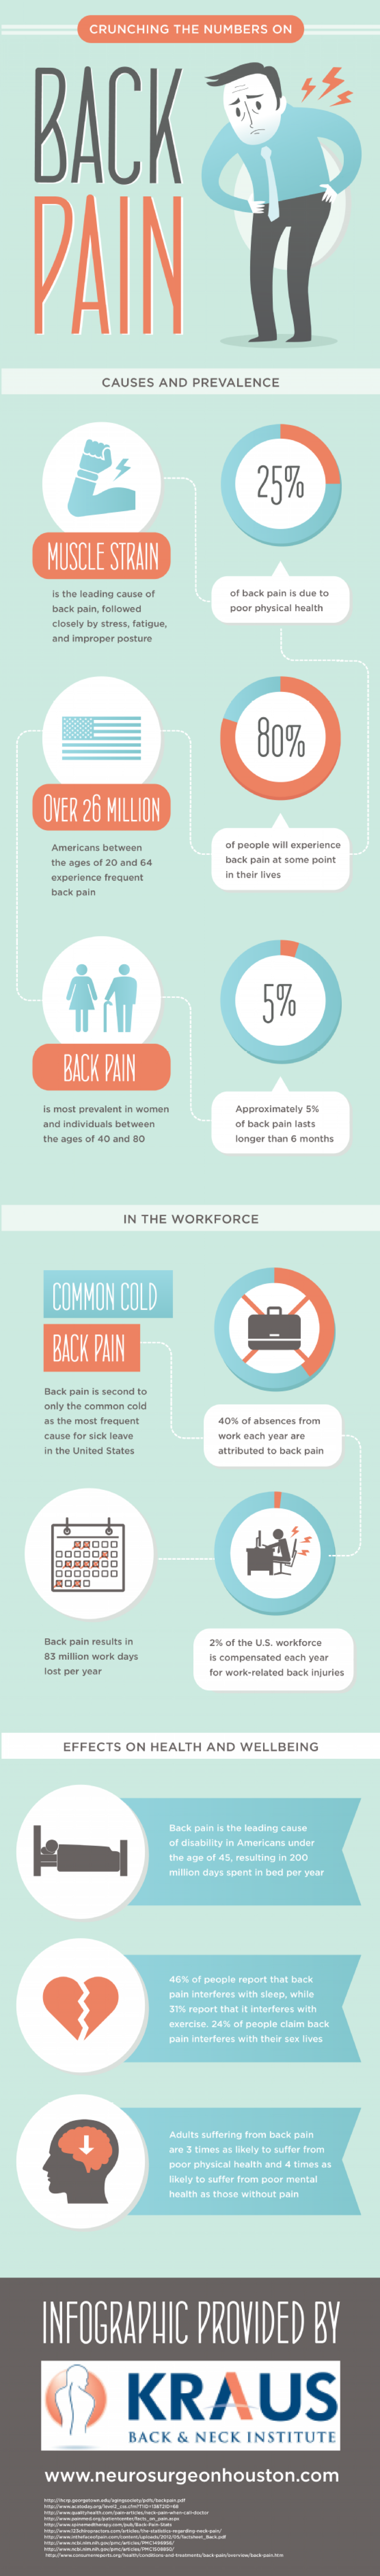 Crunching the Numbers on Back Pain Infographic